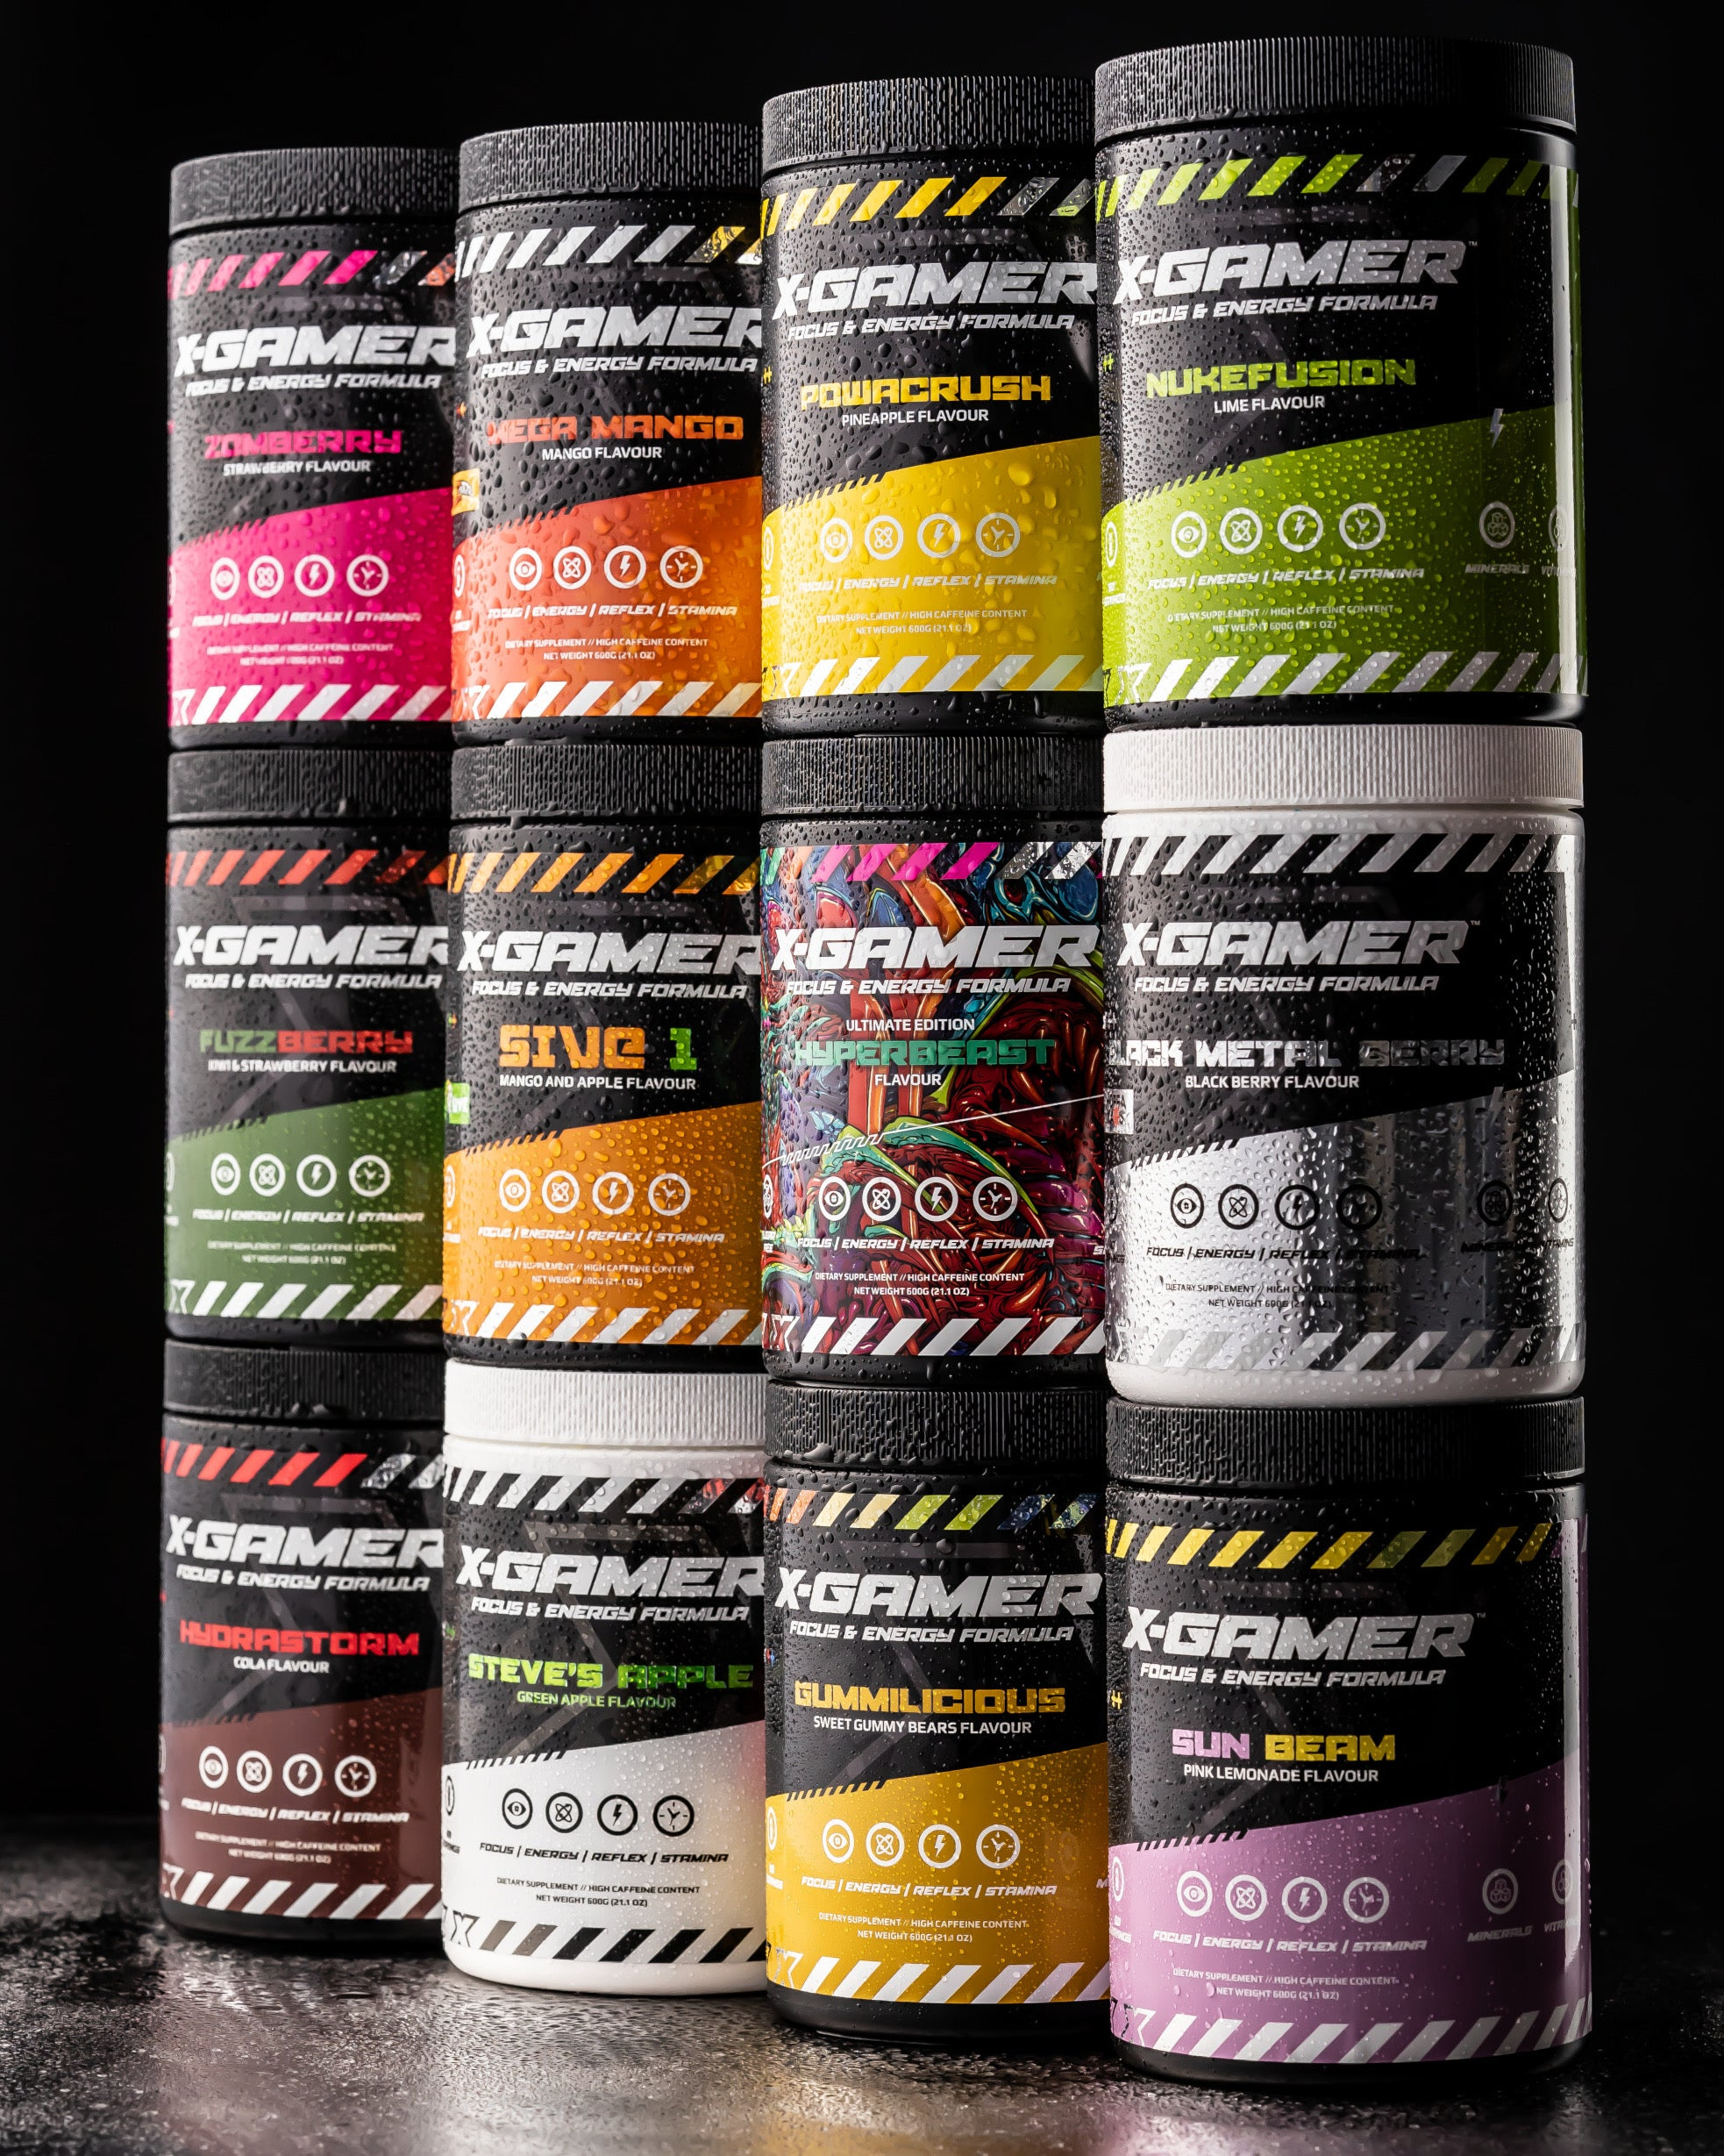 all x-gamer flavours